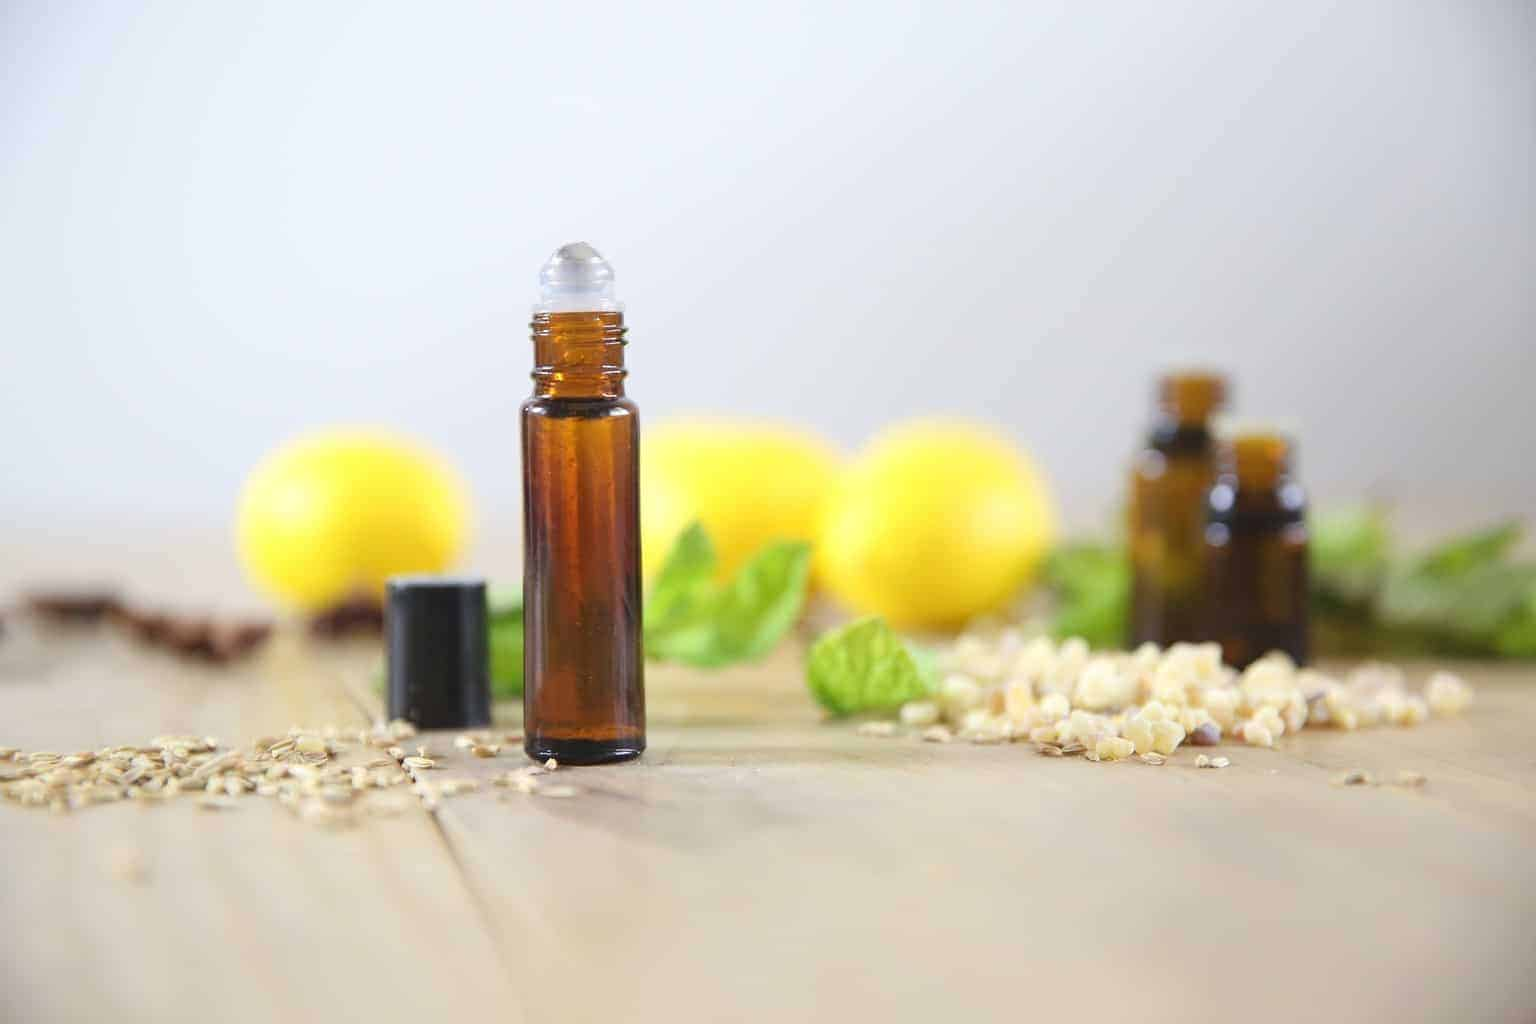 Essential oil roller bottle on wooden table with lemons in background.